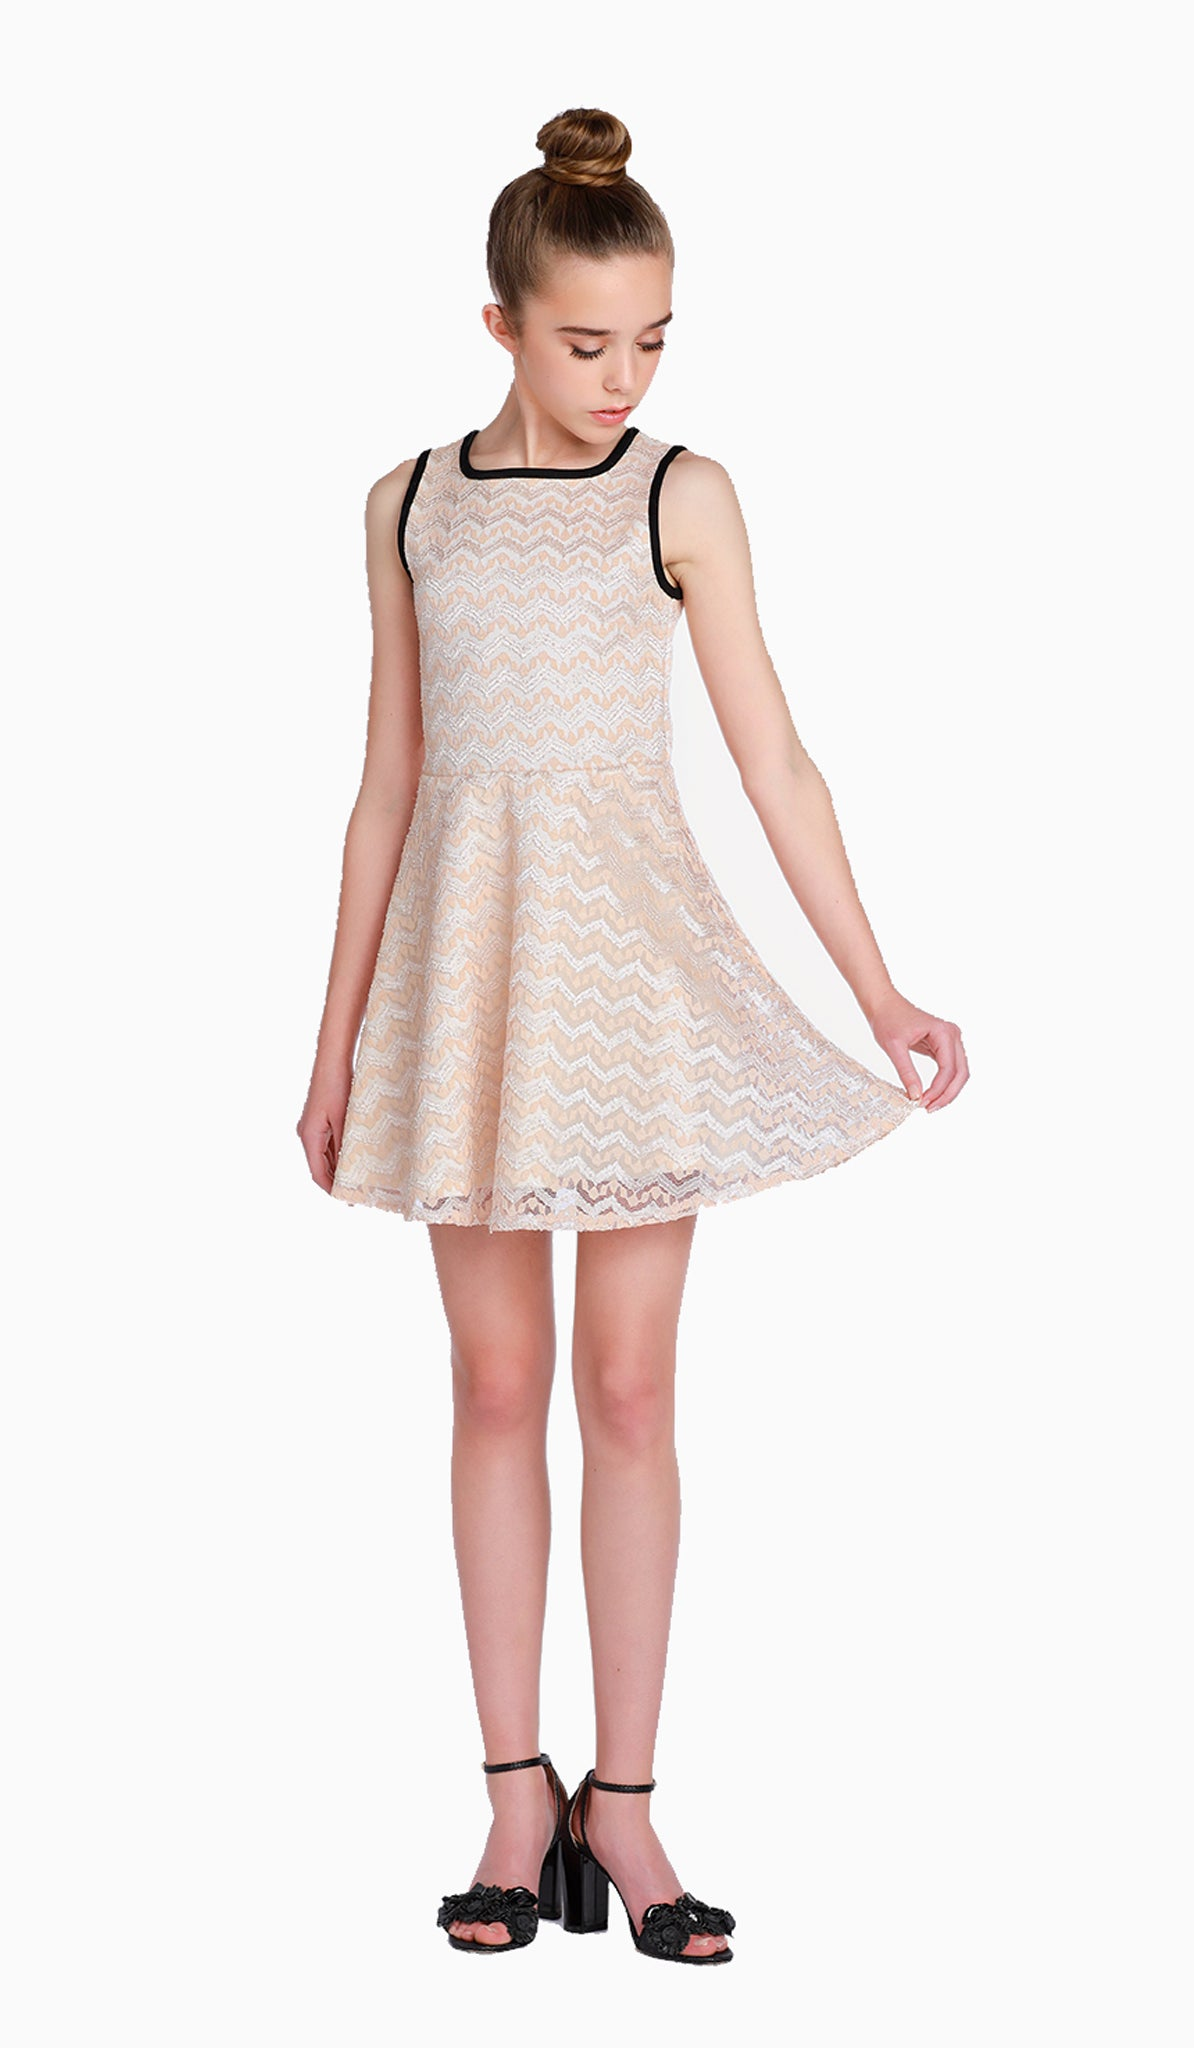 THE LUNA DRESS - Sallymiller.com - [variant title] - | Event & Party Dresses for Tween Girls & Juniors | Weddings Dresses, Bat Mitzvah Dresses, Sweet Sixteen Dresses, Graduation Dresses, Birthday Party Dresses, Bar Mitzvah Dresses, Cotillion Dresses